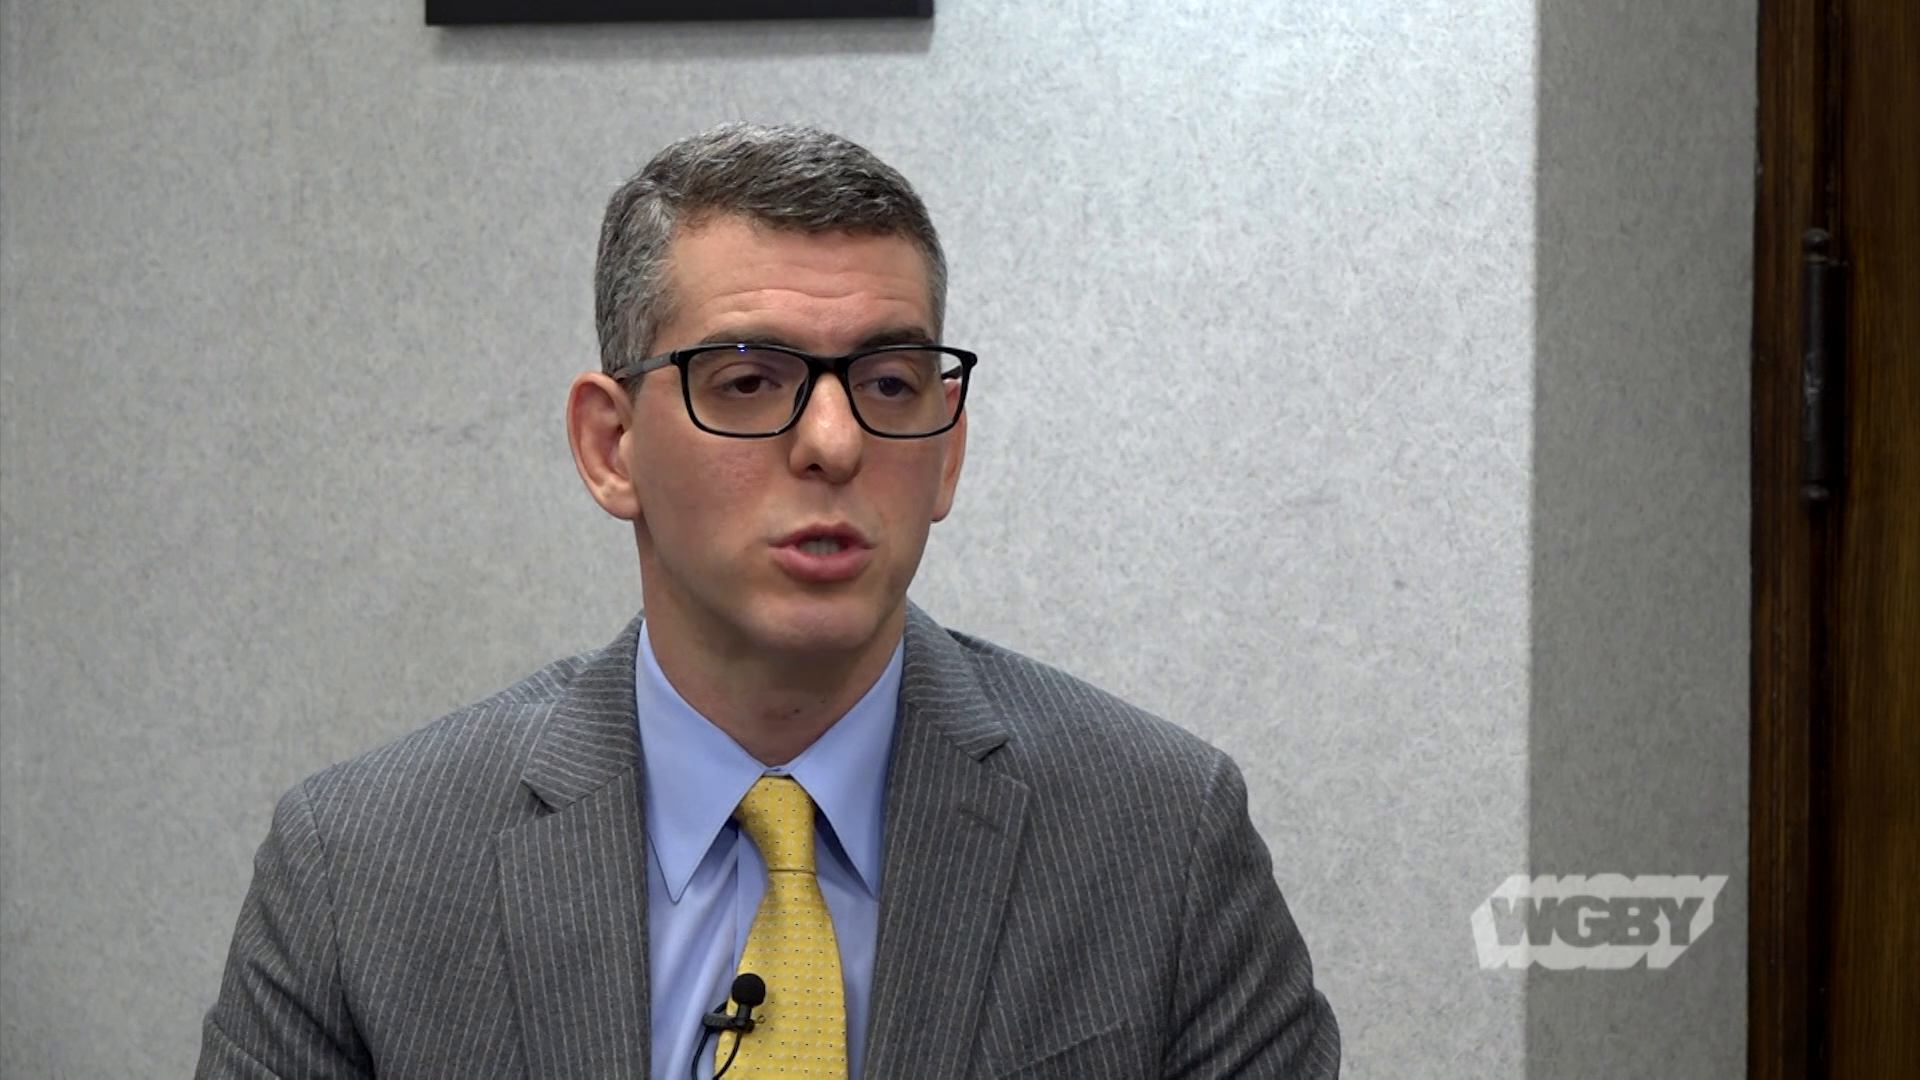 Dr. Nikko Bokowitz shares why he pursued a law career, talks about his experience as a lawyer, and and sheds light on why legal careers are in high demand.